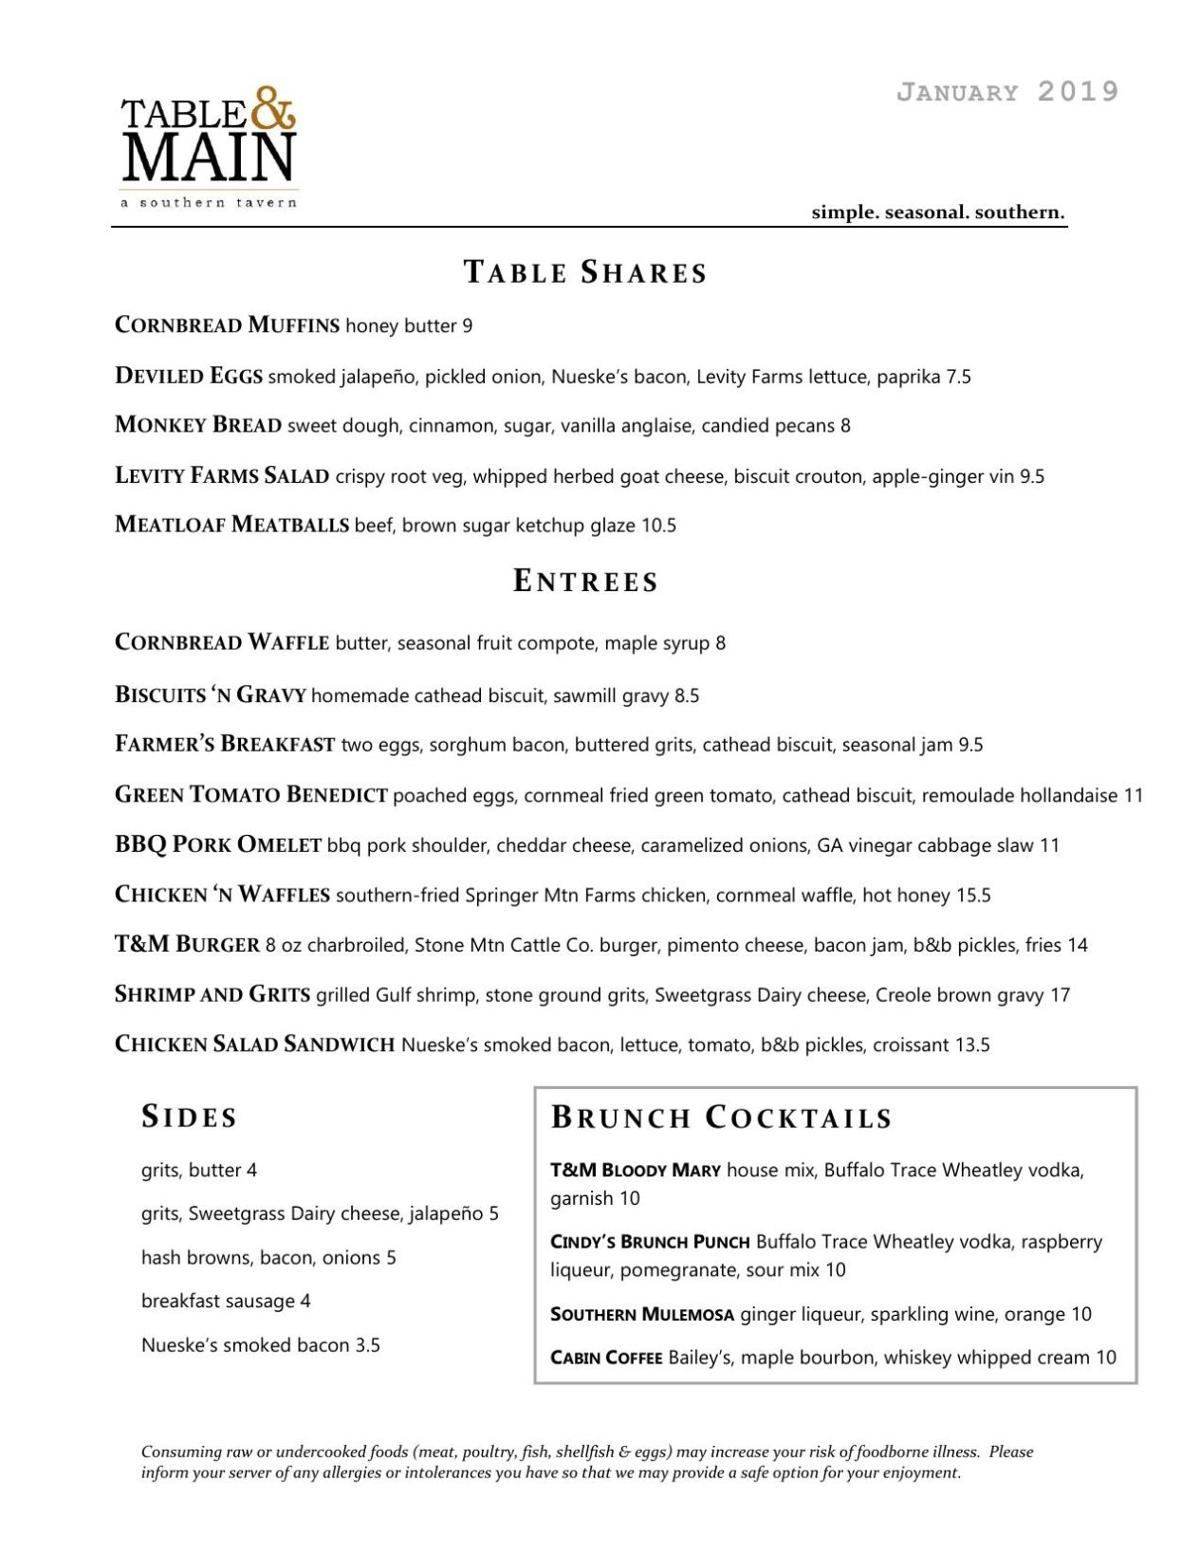 Table & Main Brunch Menu